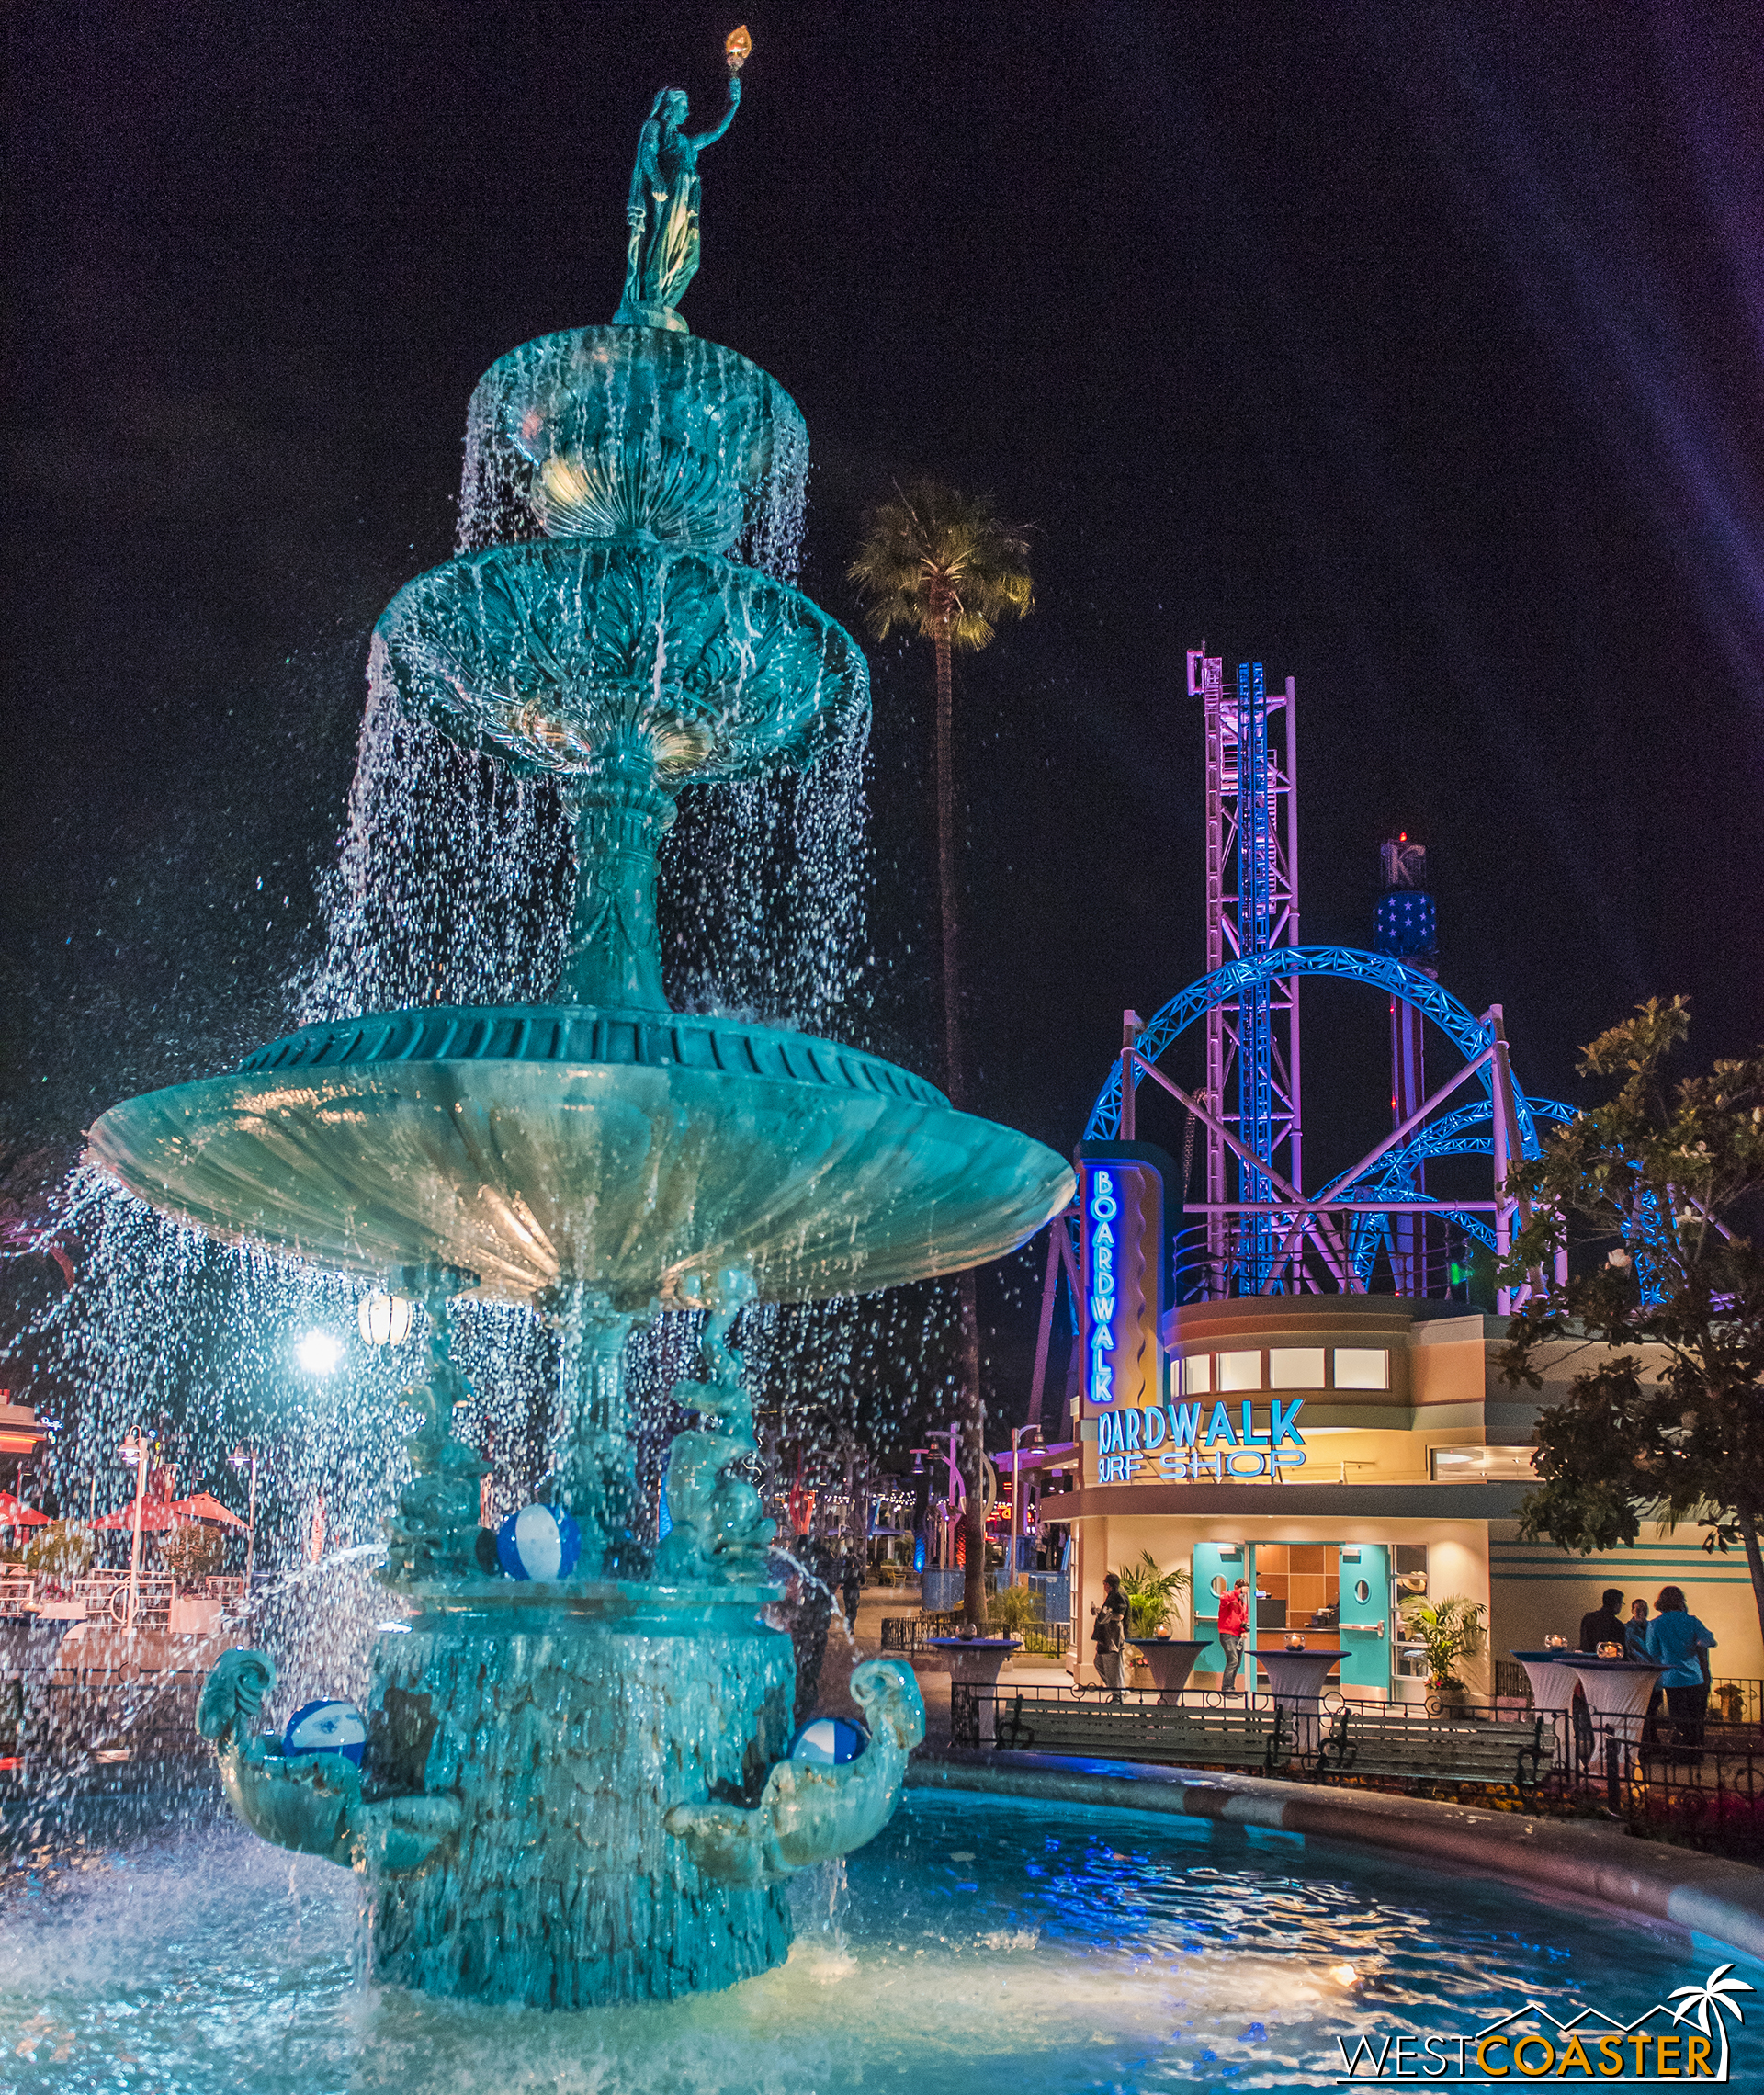 The fountain at Charleston Circle was light up in cool aqua too.